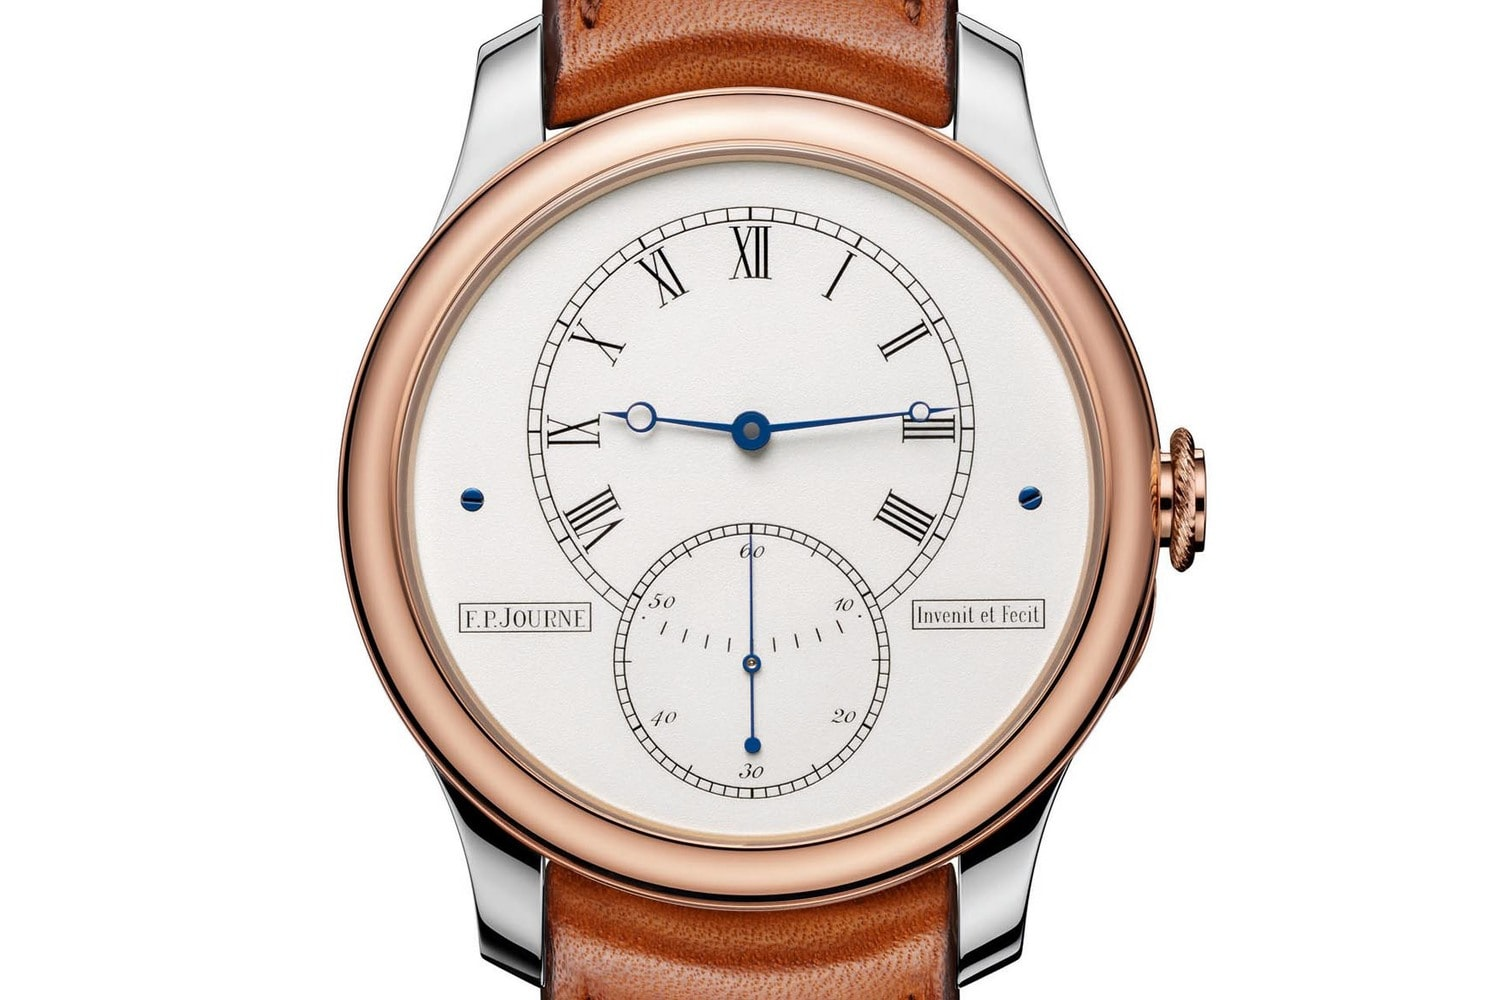 Introducing The F.P. Journe Historical Anniversary Tourbillon, Celebrating 30 Years Of F.P. Journe (Details & Pricing)